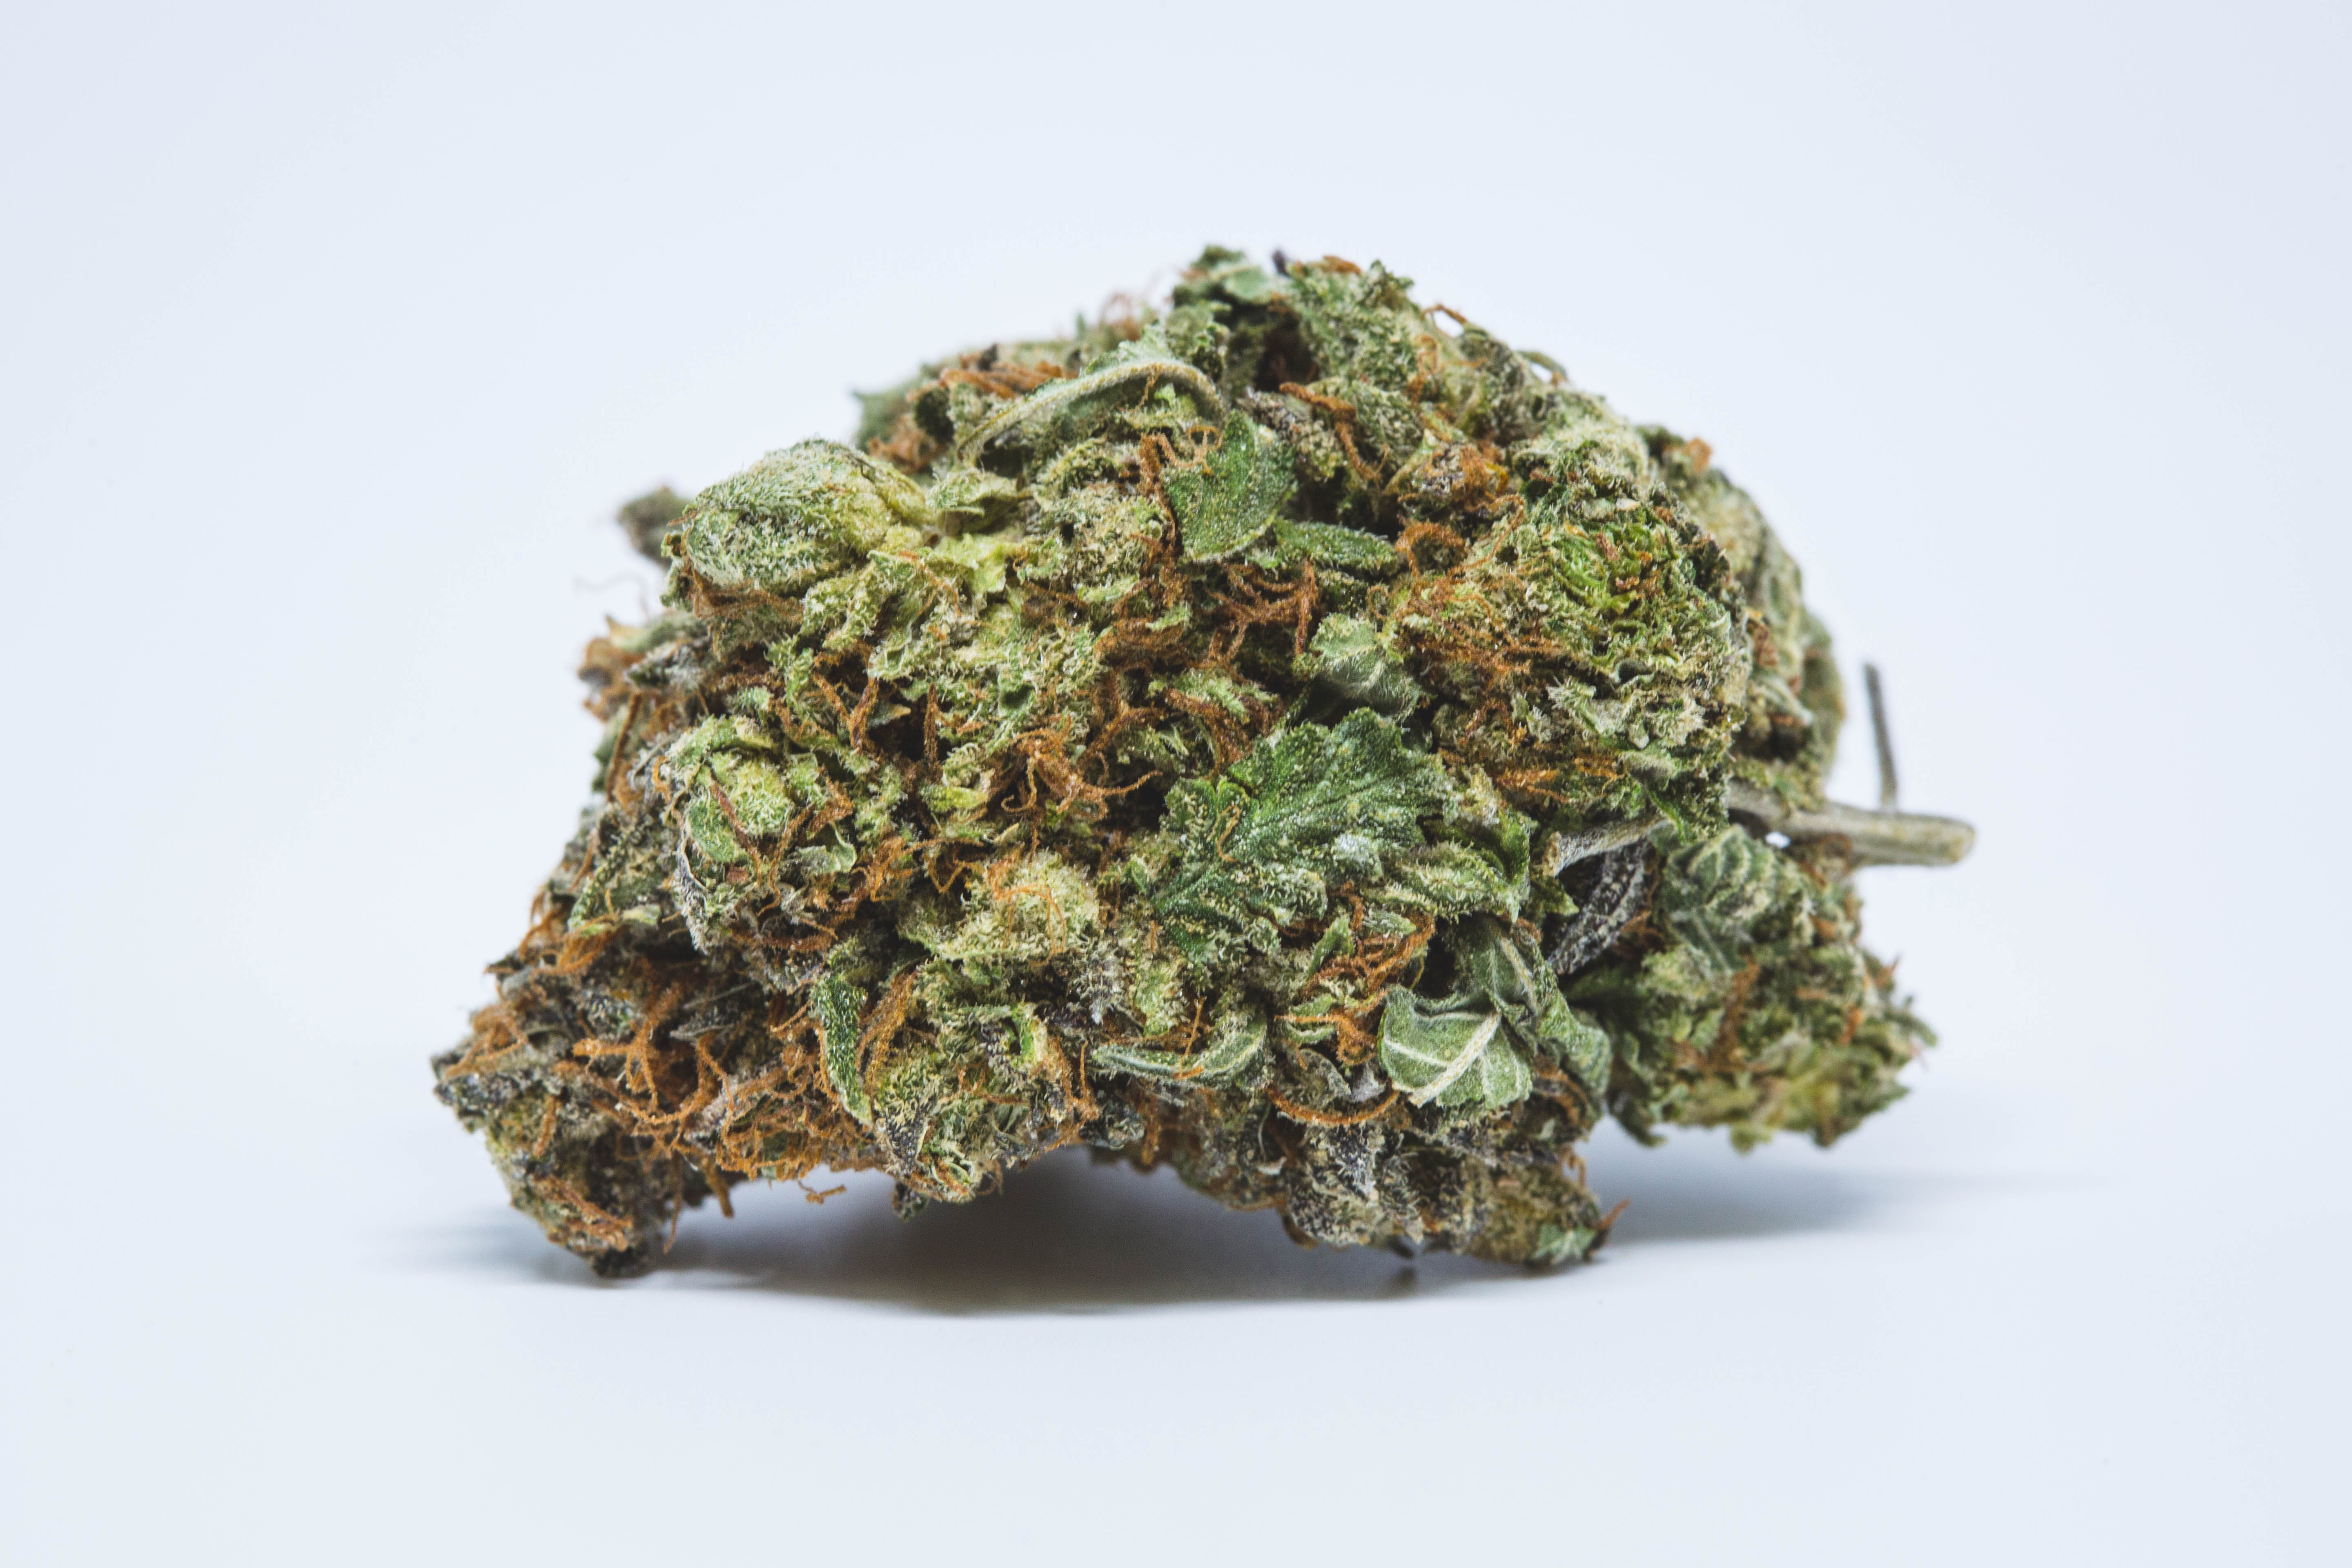 Purple Kush Weed; Purple Kush Cannabis Strain; Purple Kush Indica Marijuana Strain